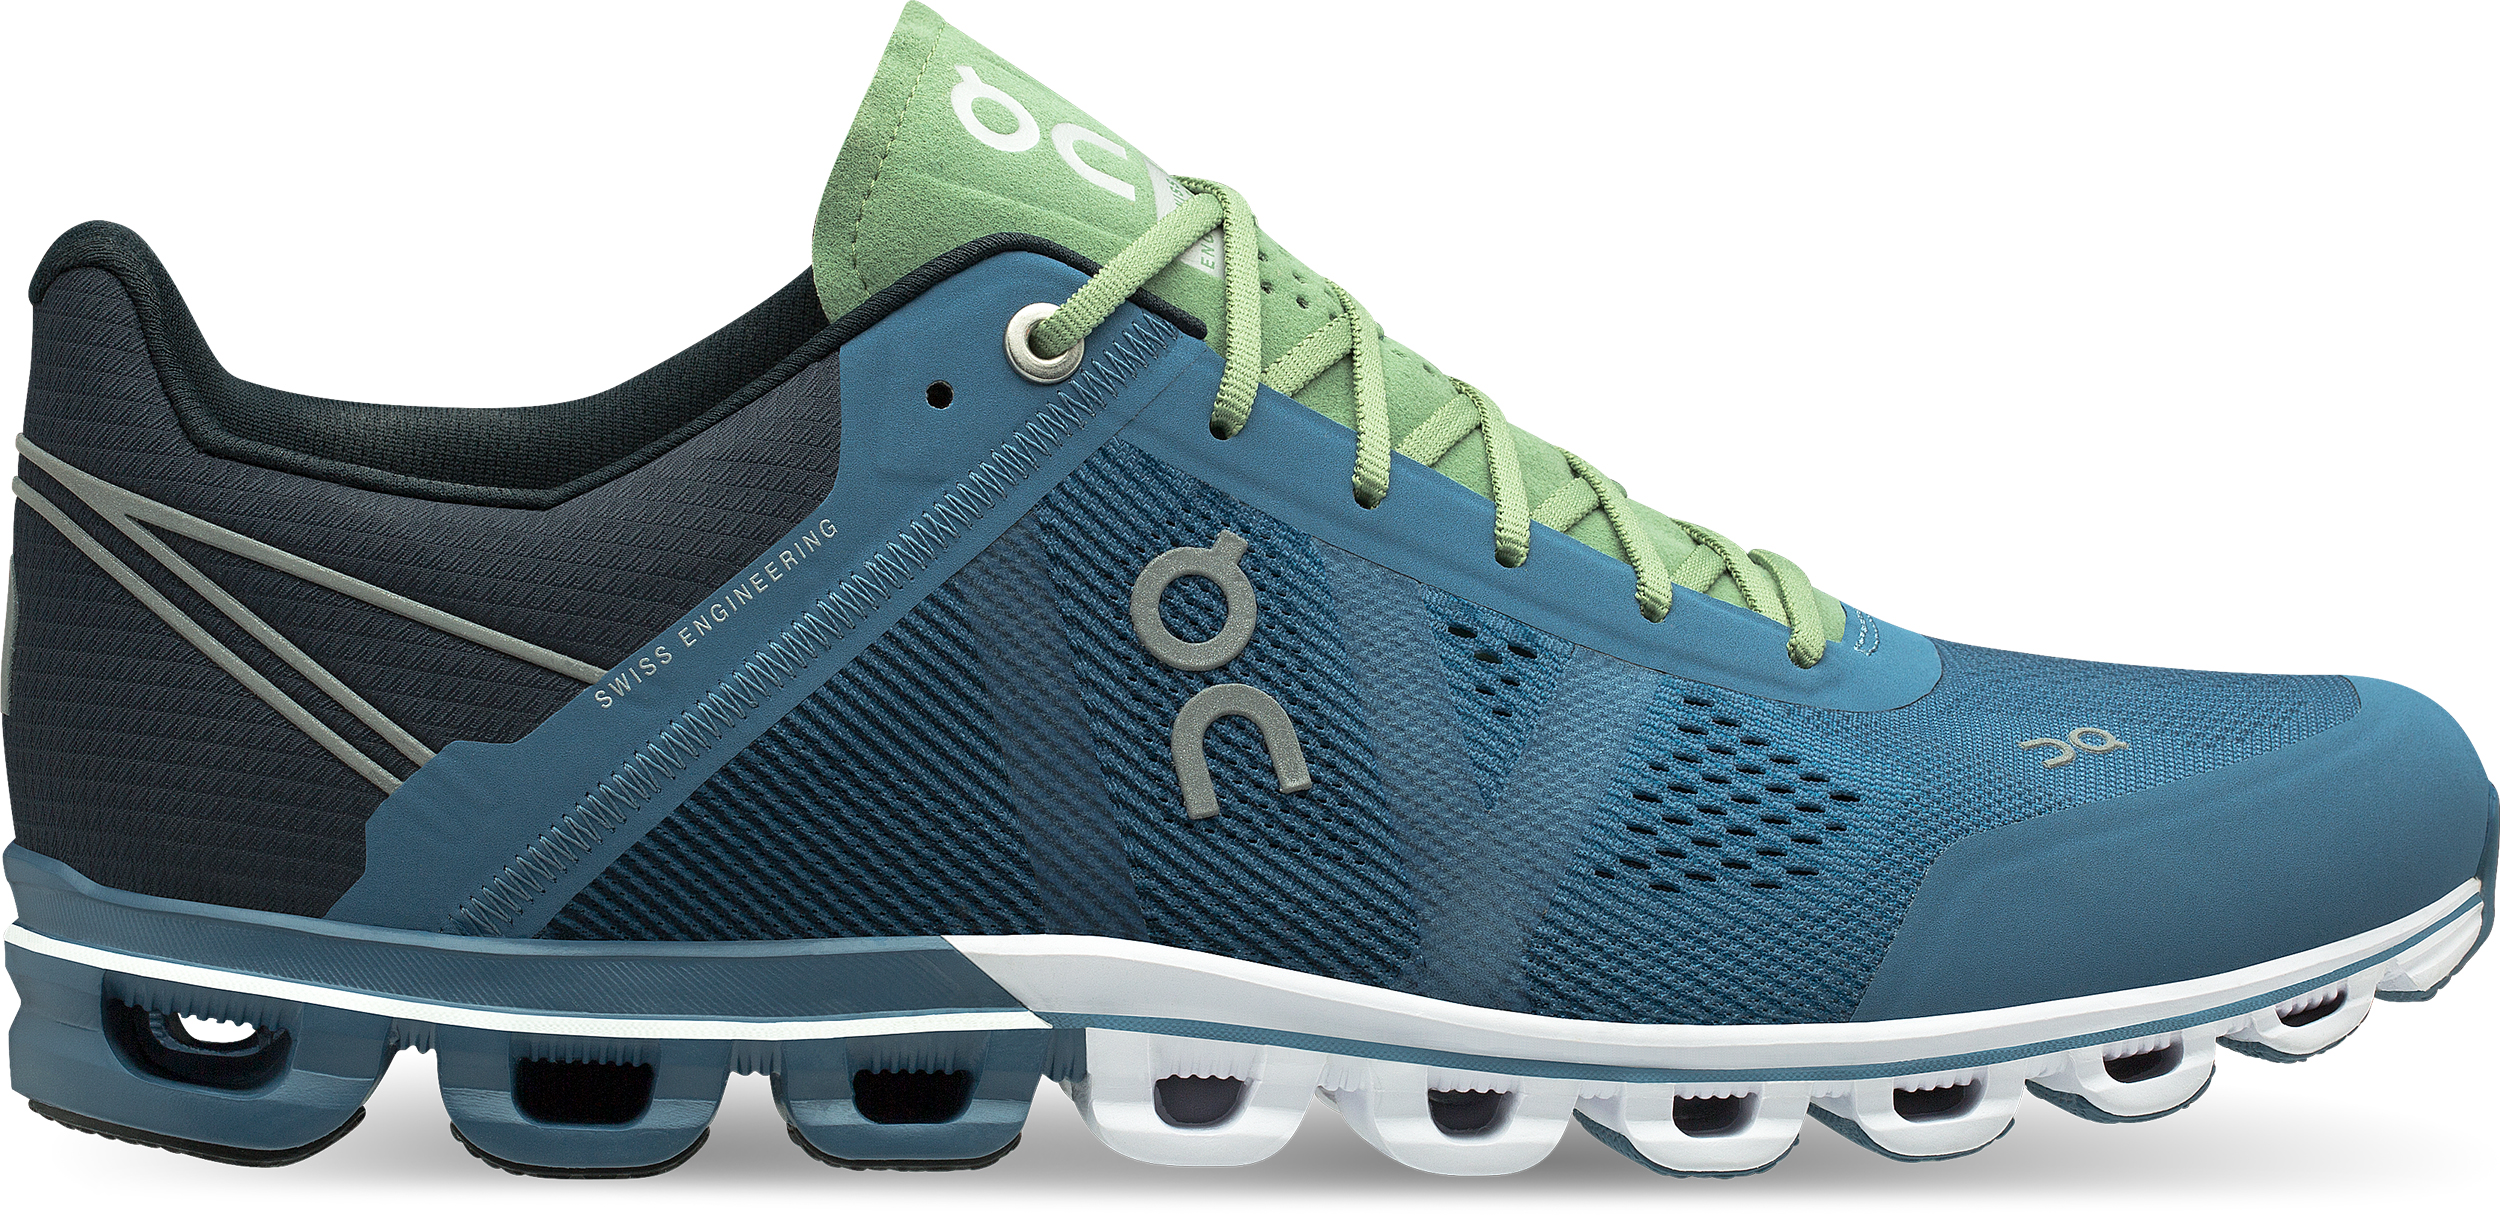 los angeles 8601f 2bf0e On Cloudflow Road Running Shoes - Men's